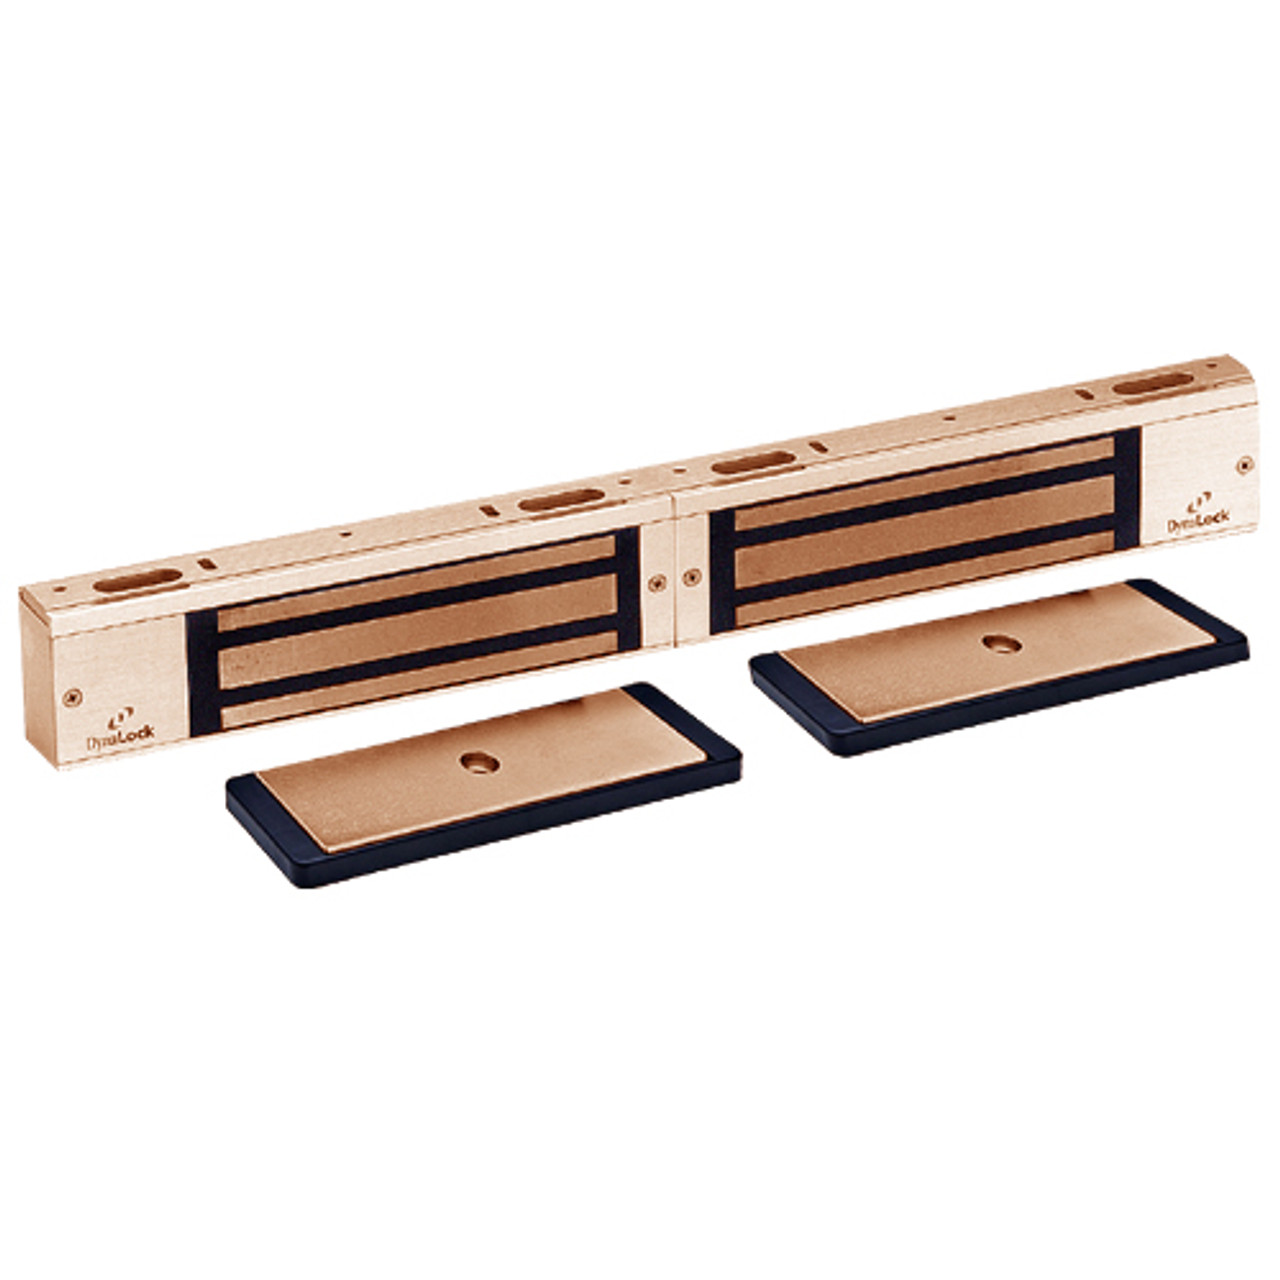 3002-US10-HSM2 DynaLock 3000 Series 1500 LBs Double Electromagnetic Lock for Outswing Door with HSM in Satin Bronze